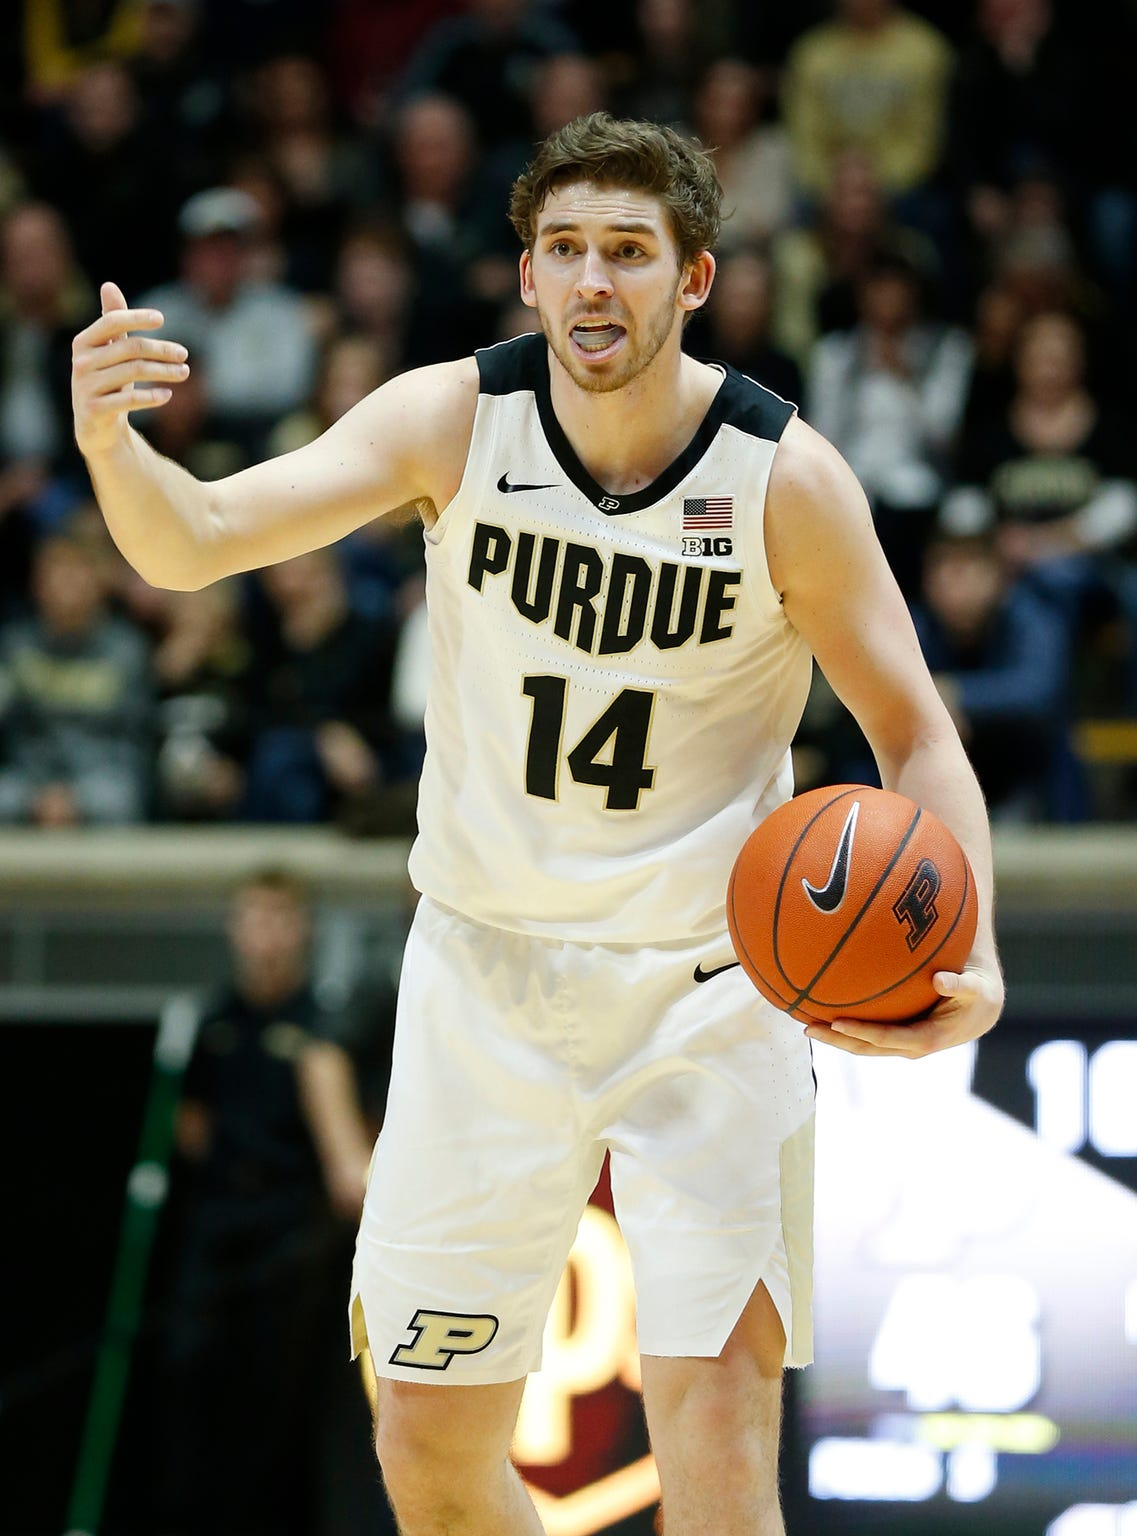 Ryan Cline of Purdue calls out a play to his teammates as they face Belmont in the second half Saturday, December 29, 2018, at Mackey Arena. Purdue defeated Belmont 73-62.